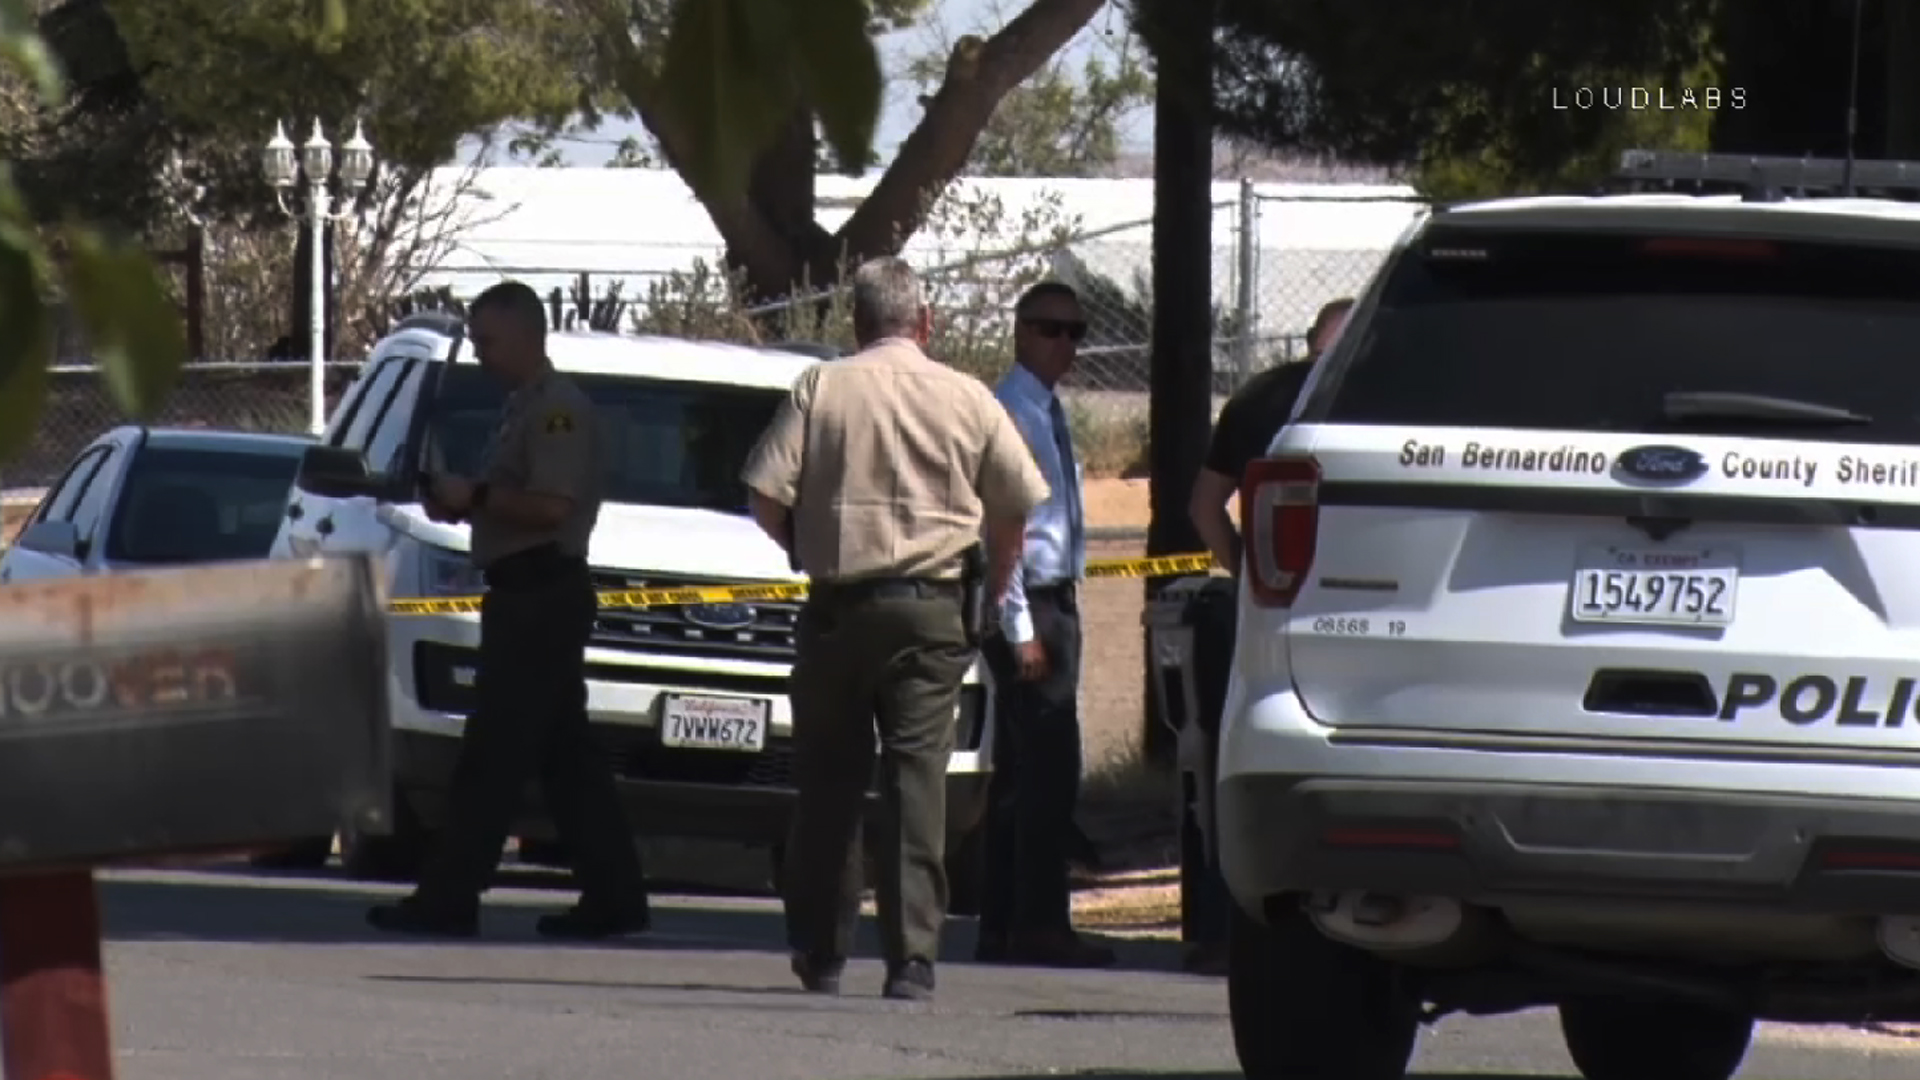 Officials respond after a man was fatally shot by deputies in Victorville on Sept. 4, 2019. (Credit: Loudlabs)